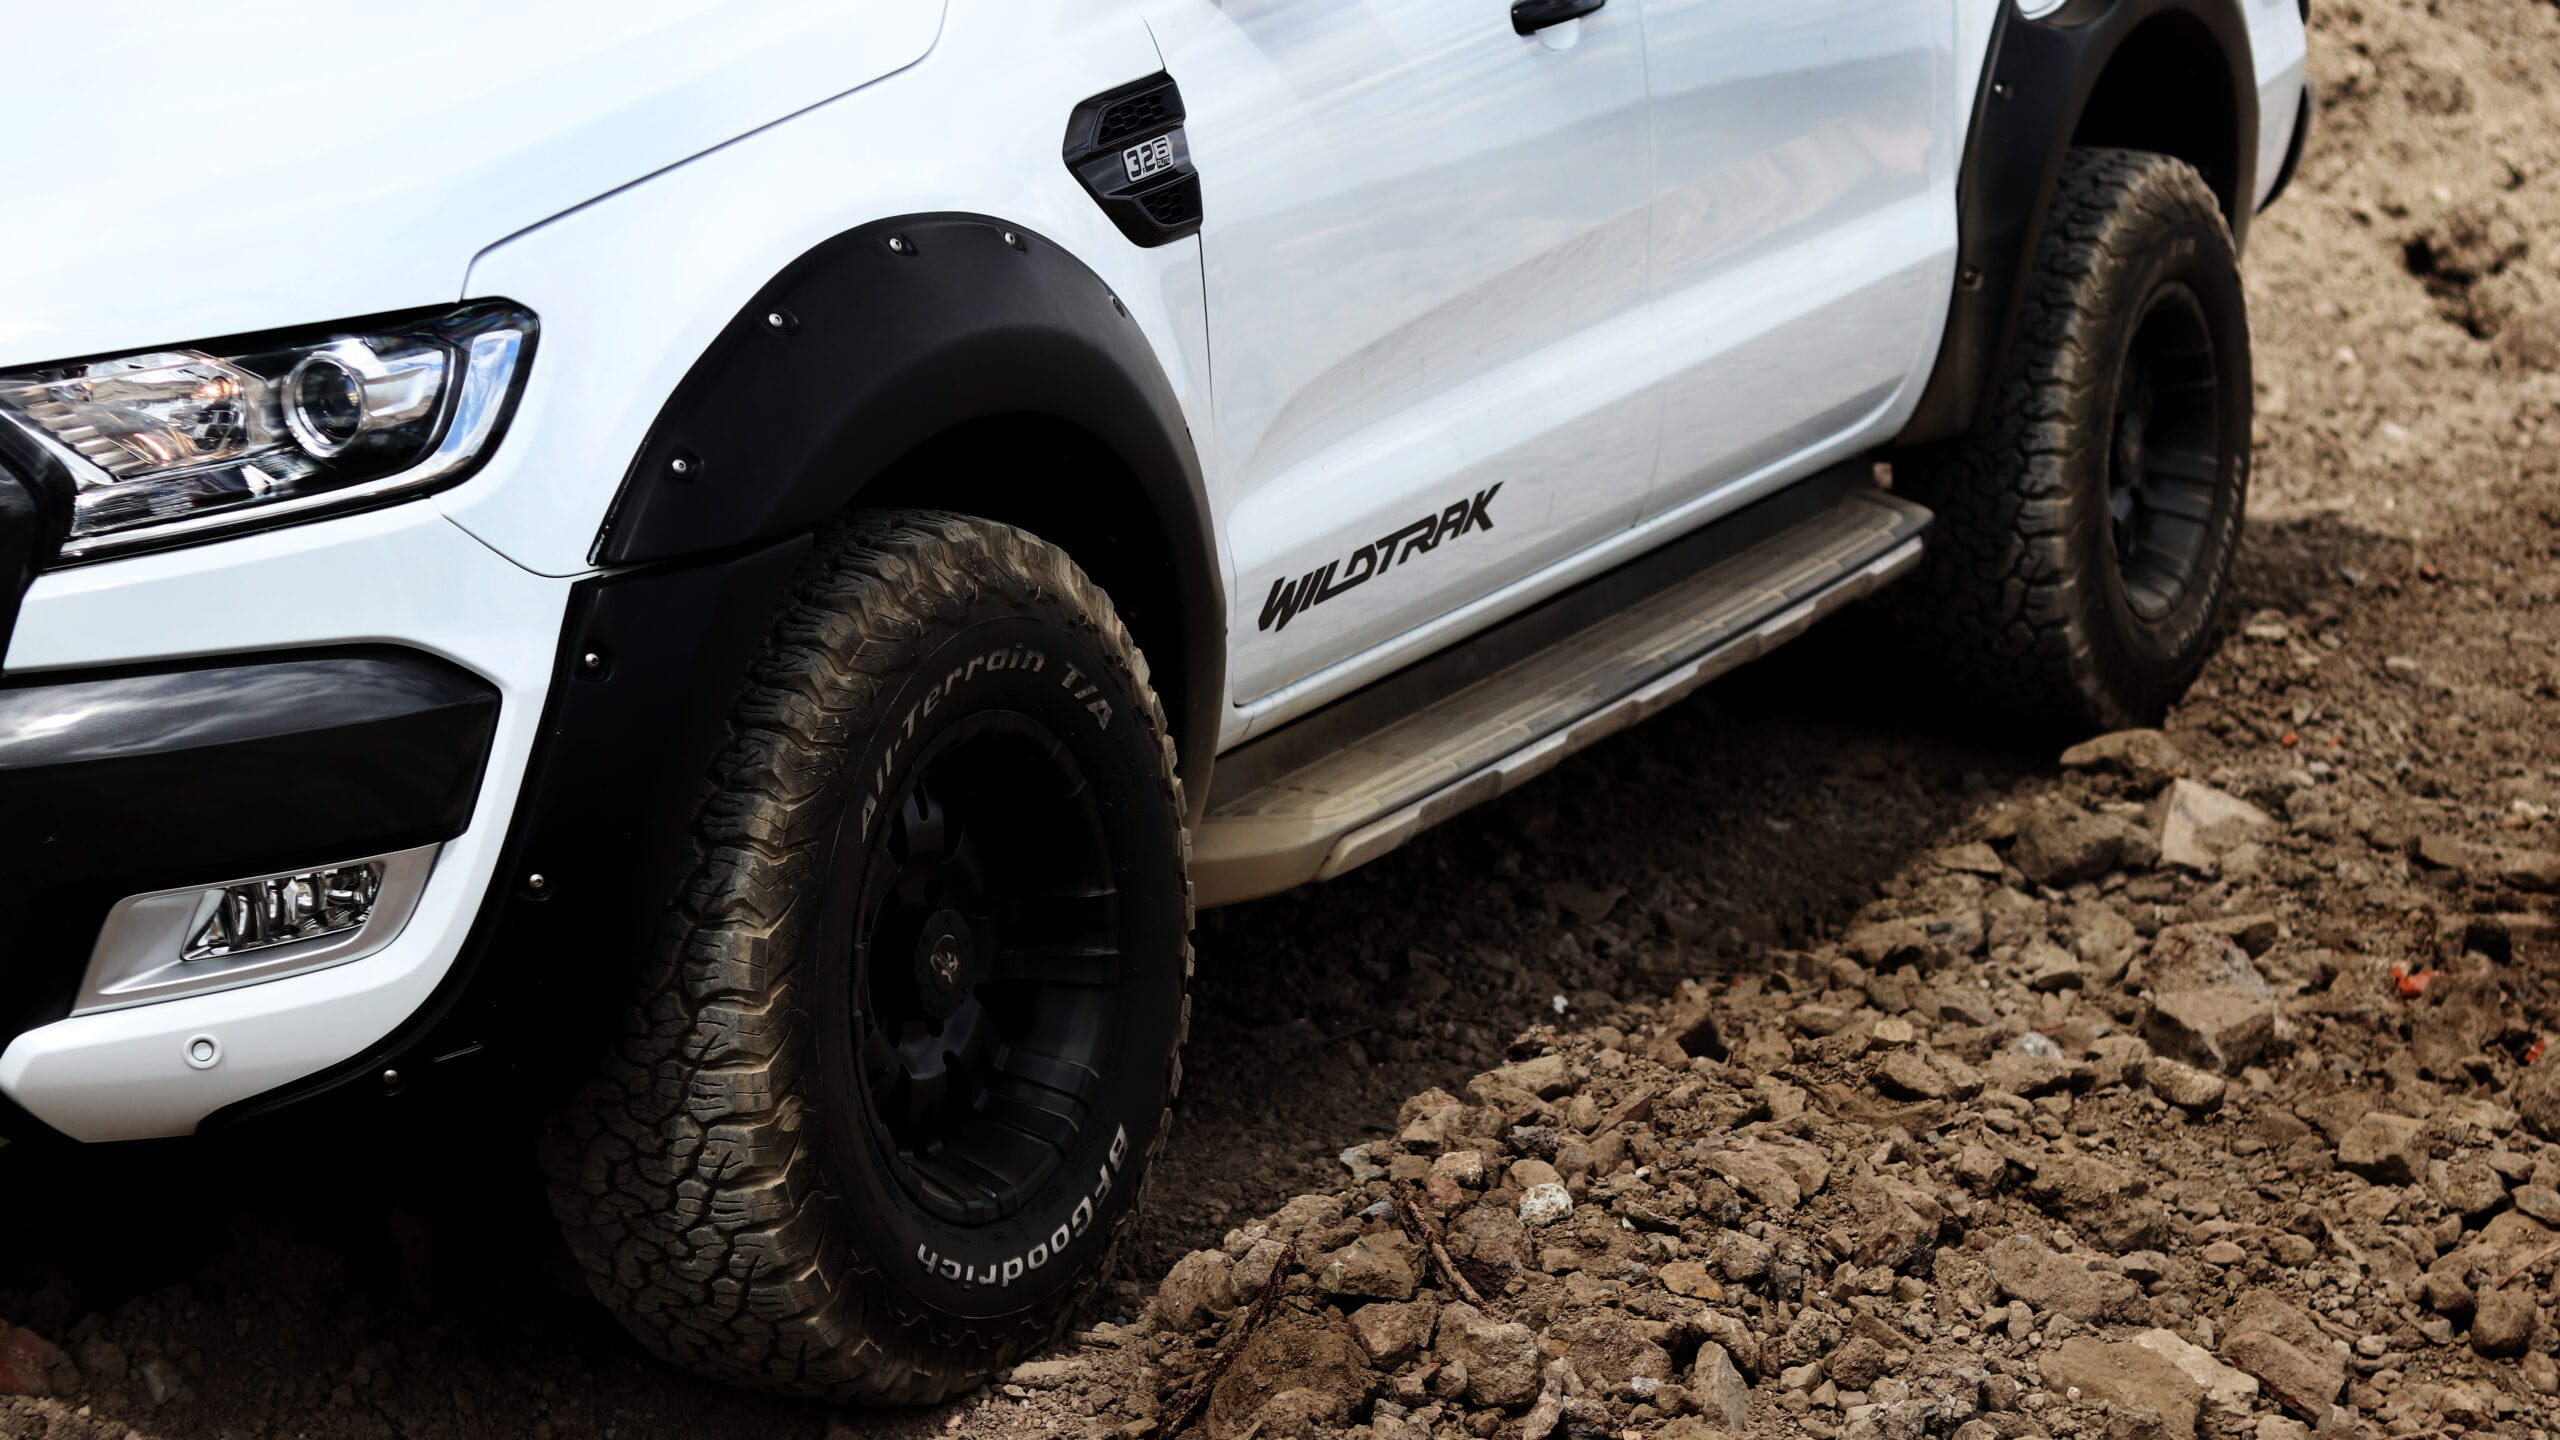 Ford Ranger Wildtrak - test vozu